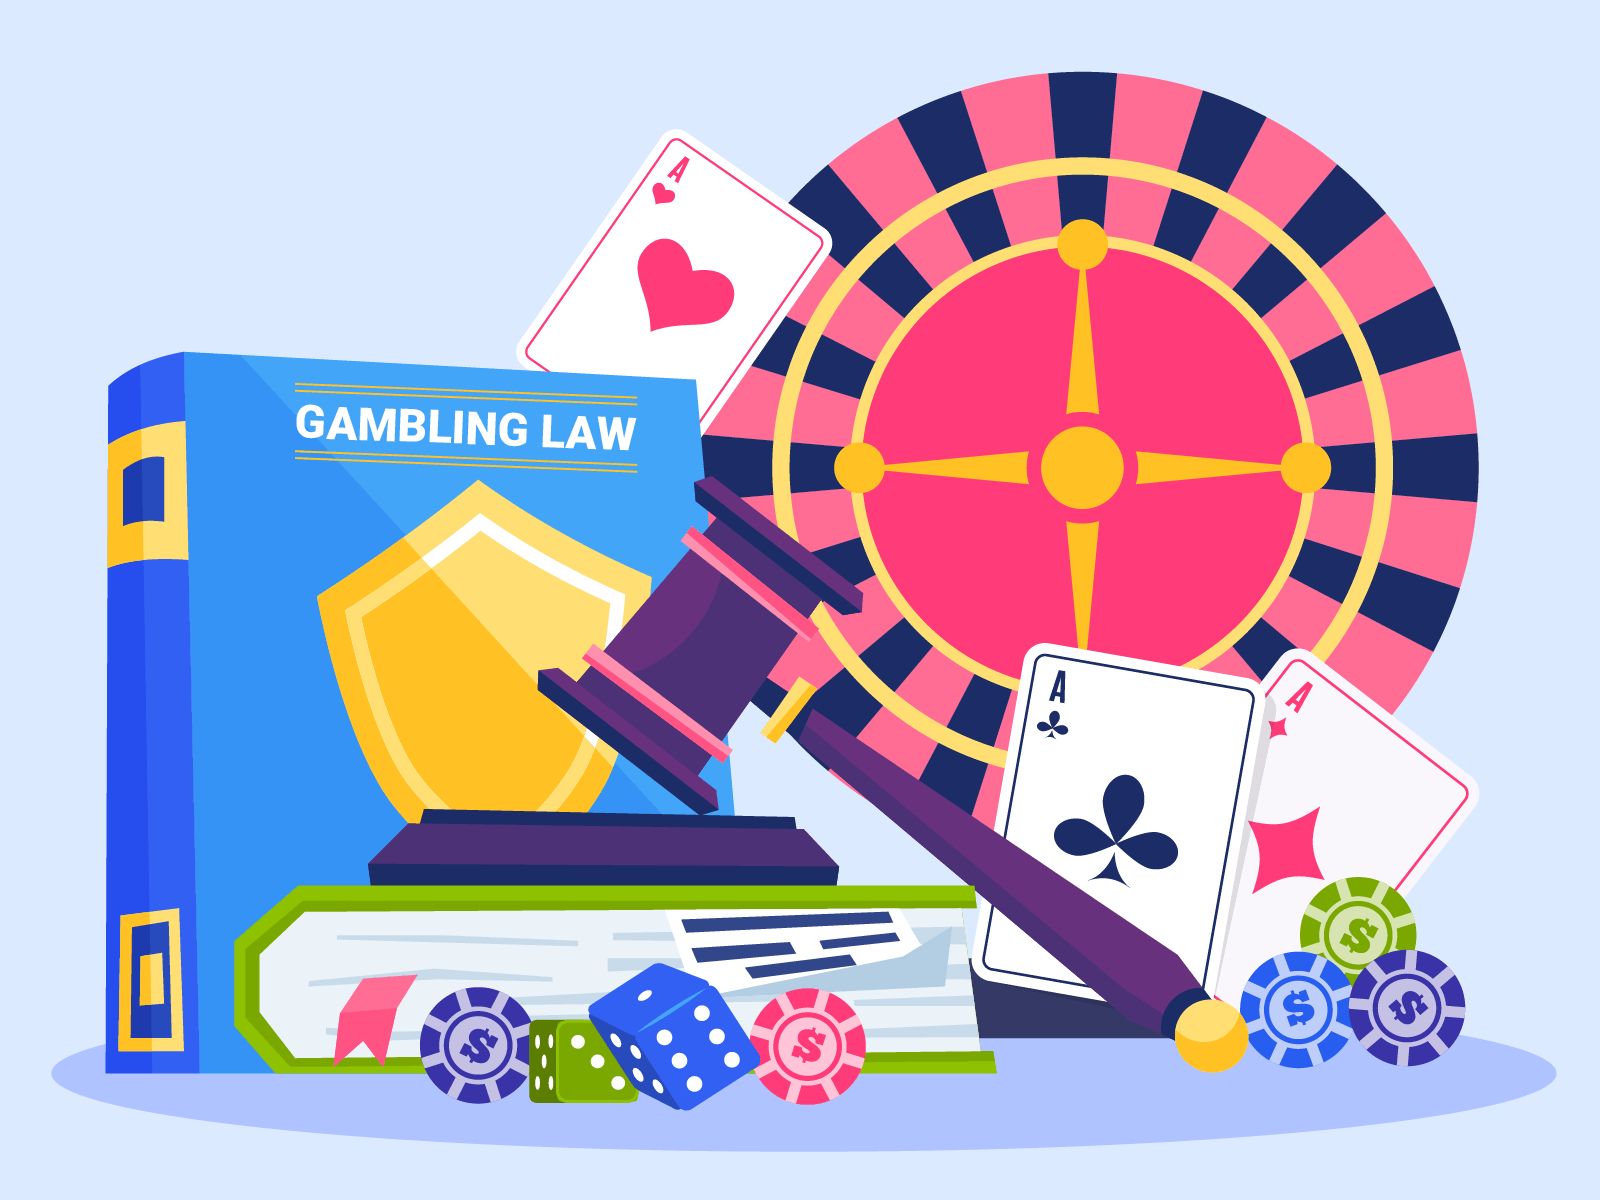 What Are The Benefits Of Legalized Gambling?